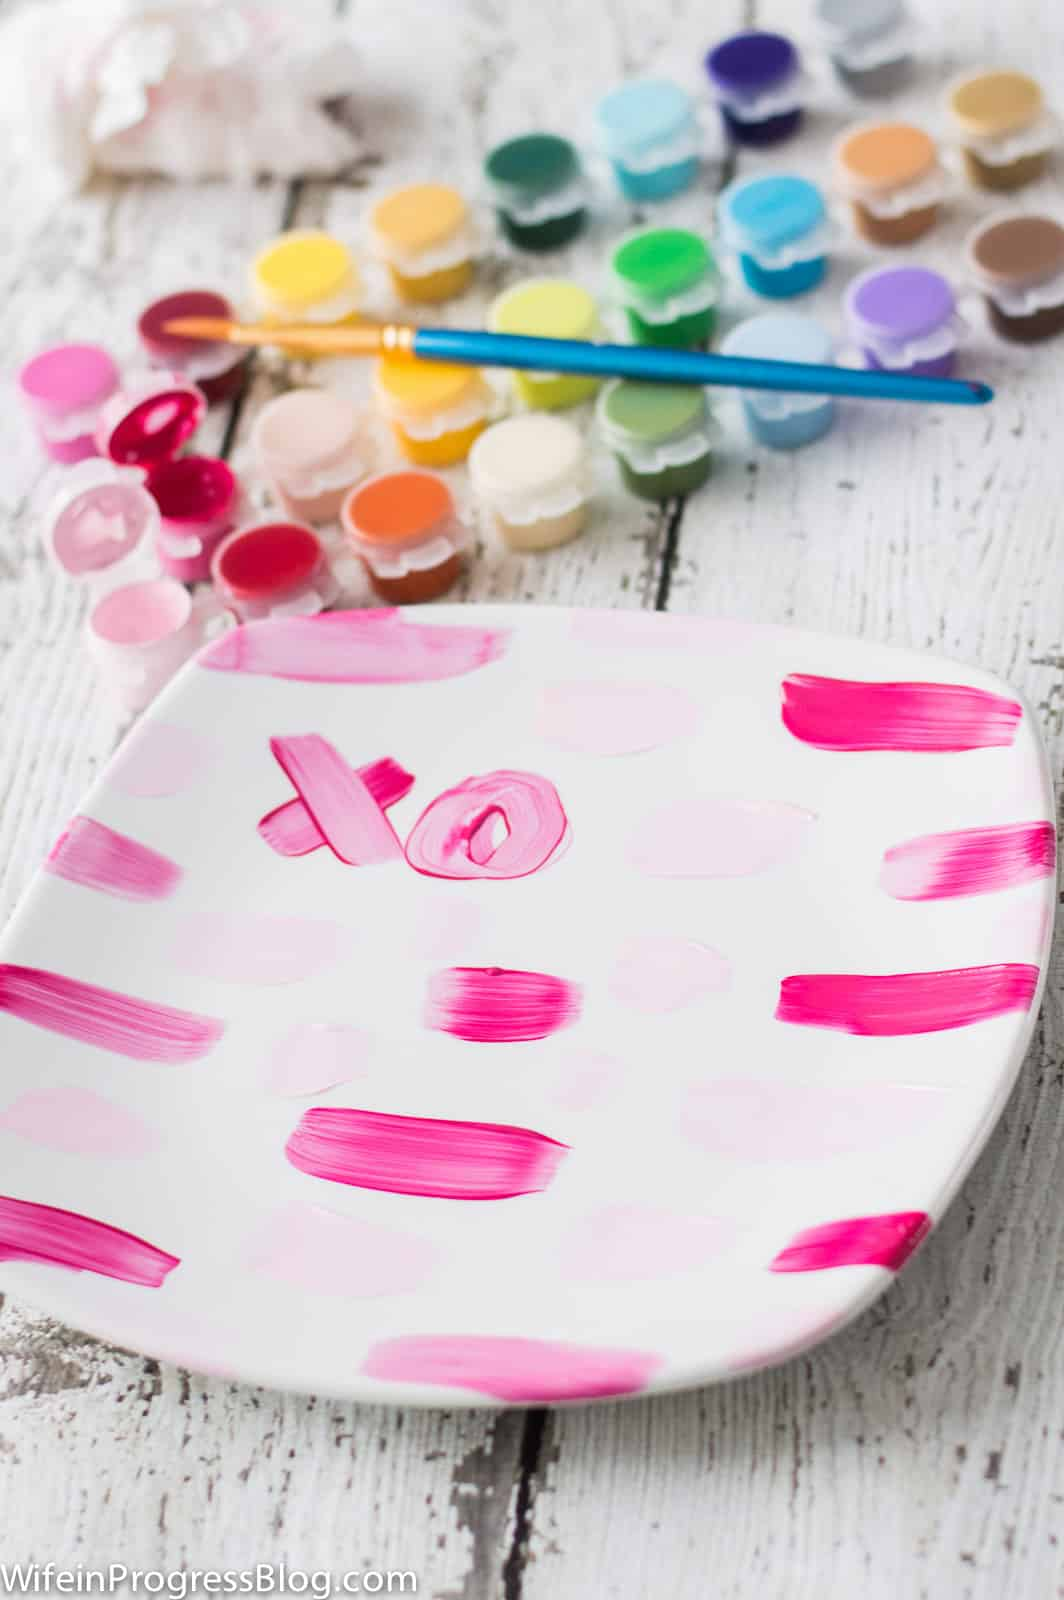 These DIY painted Valentine's Day plates are a quick and easy project that anyone can do